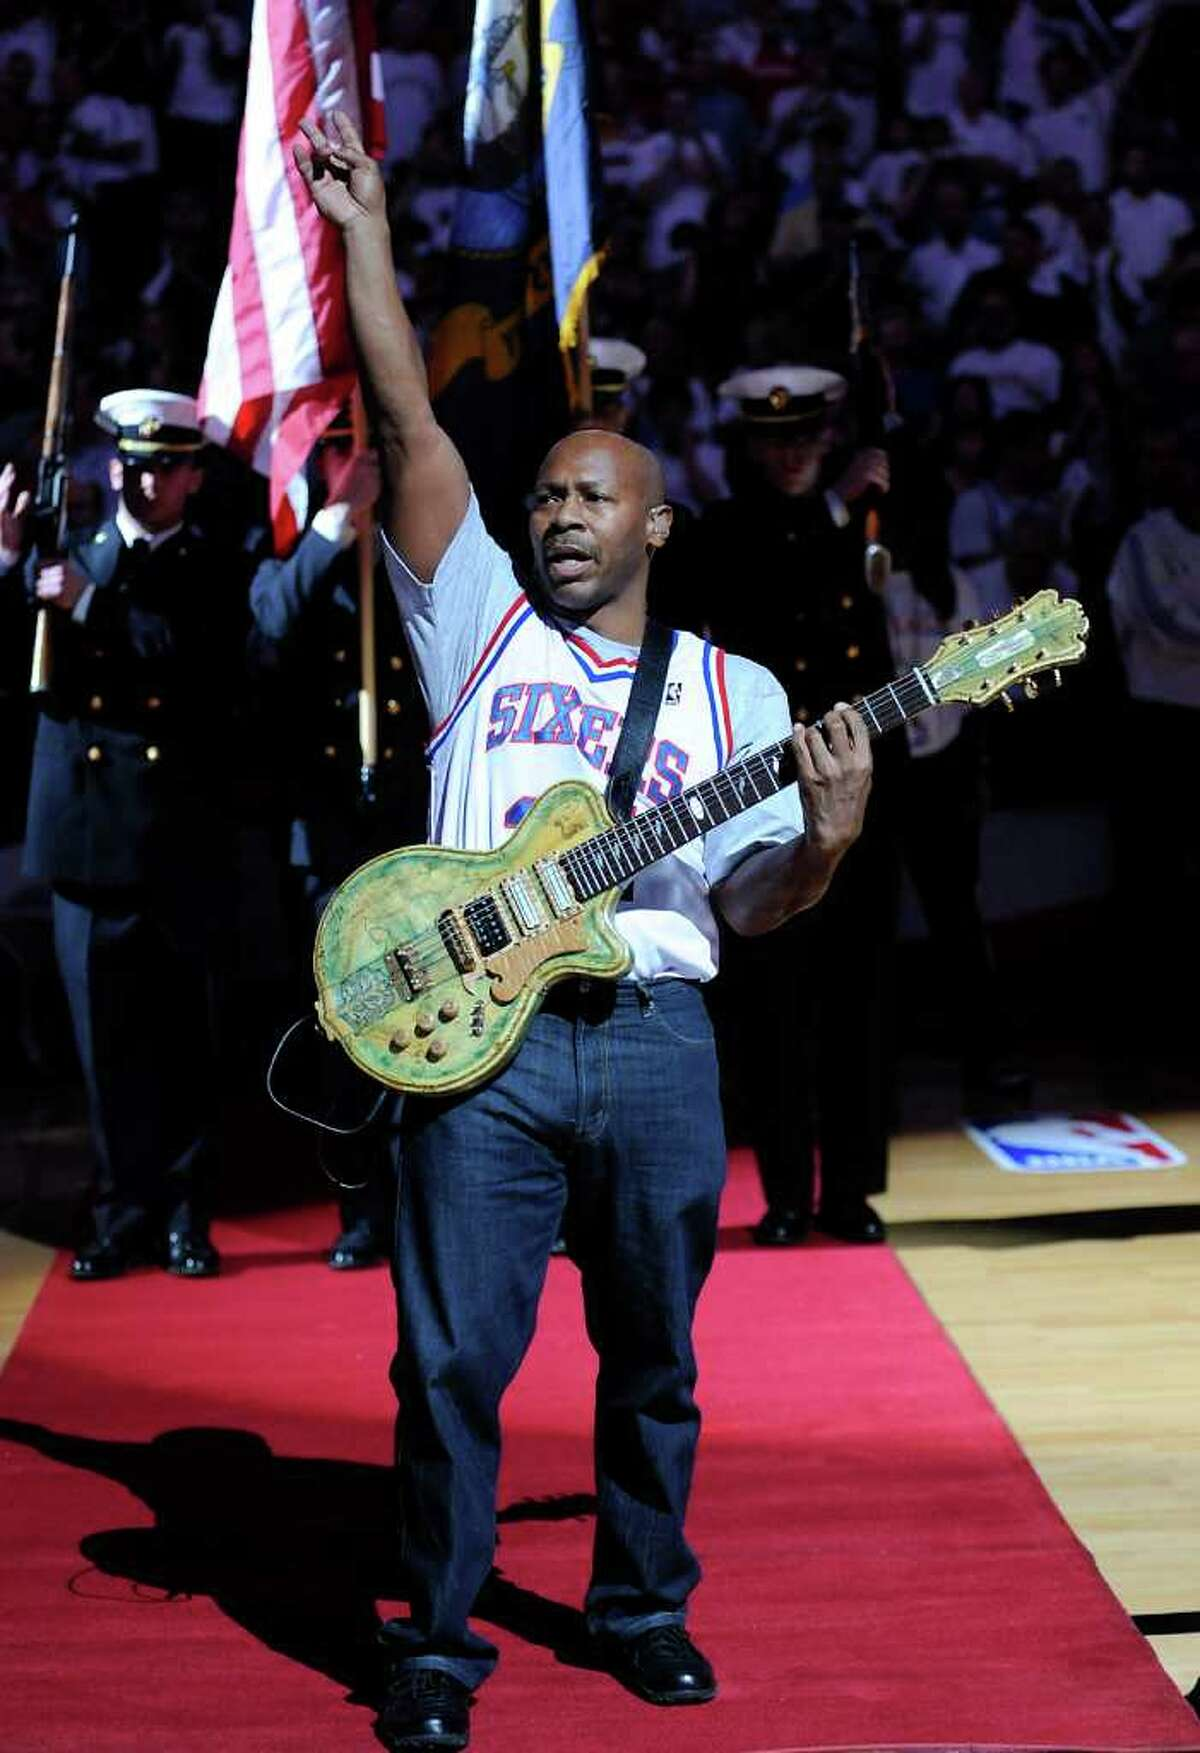 FILE - In this April 26, 2009 file photo, guitarist Kevin Eubanks preforms the national anthem before the start of Game 4 of an NBA basketball first-round playoff series between the Orlando Magic and the Philadelphia 76ers in Philadelphia. (AP Photo/Michael Perez, file)